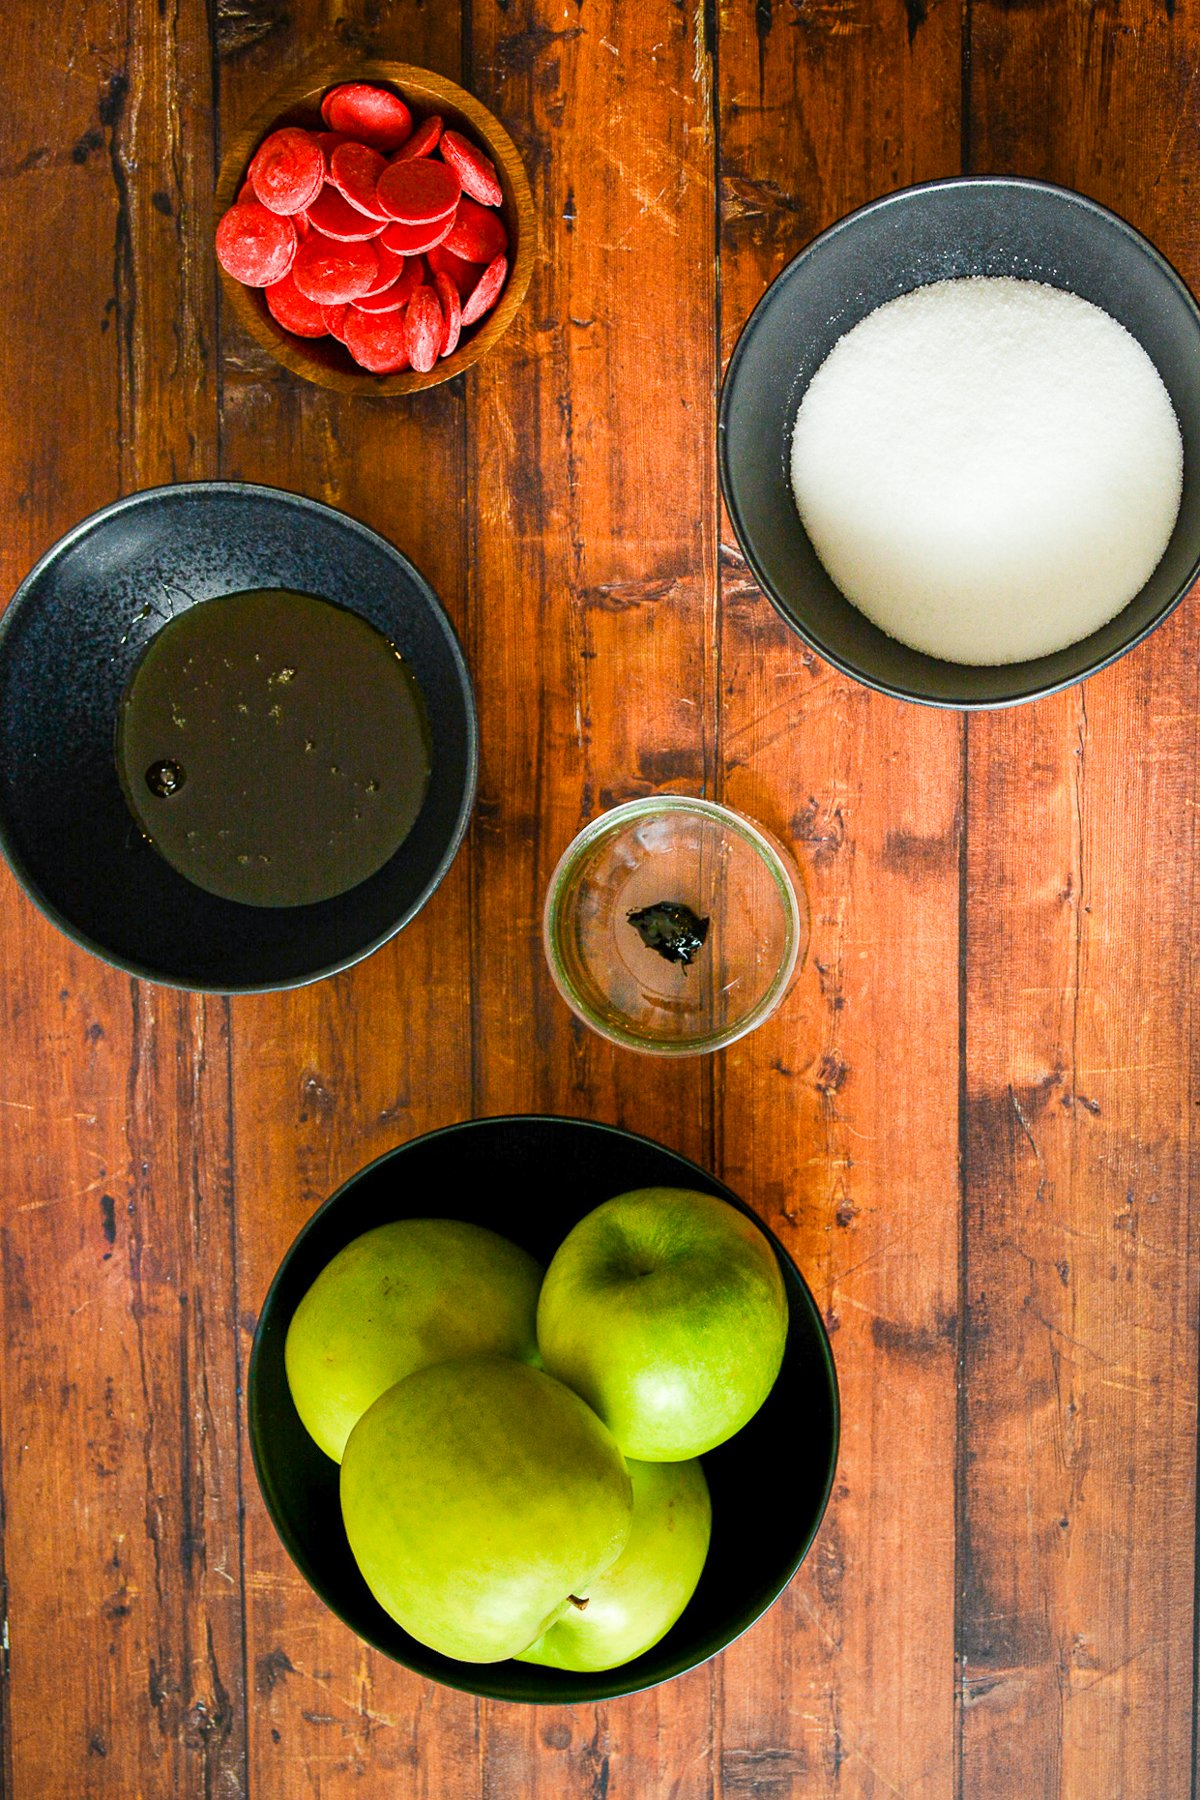 Ingredients needed to make Poison Apples.